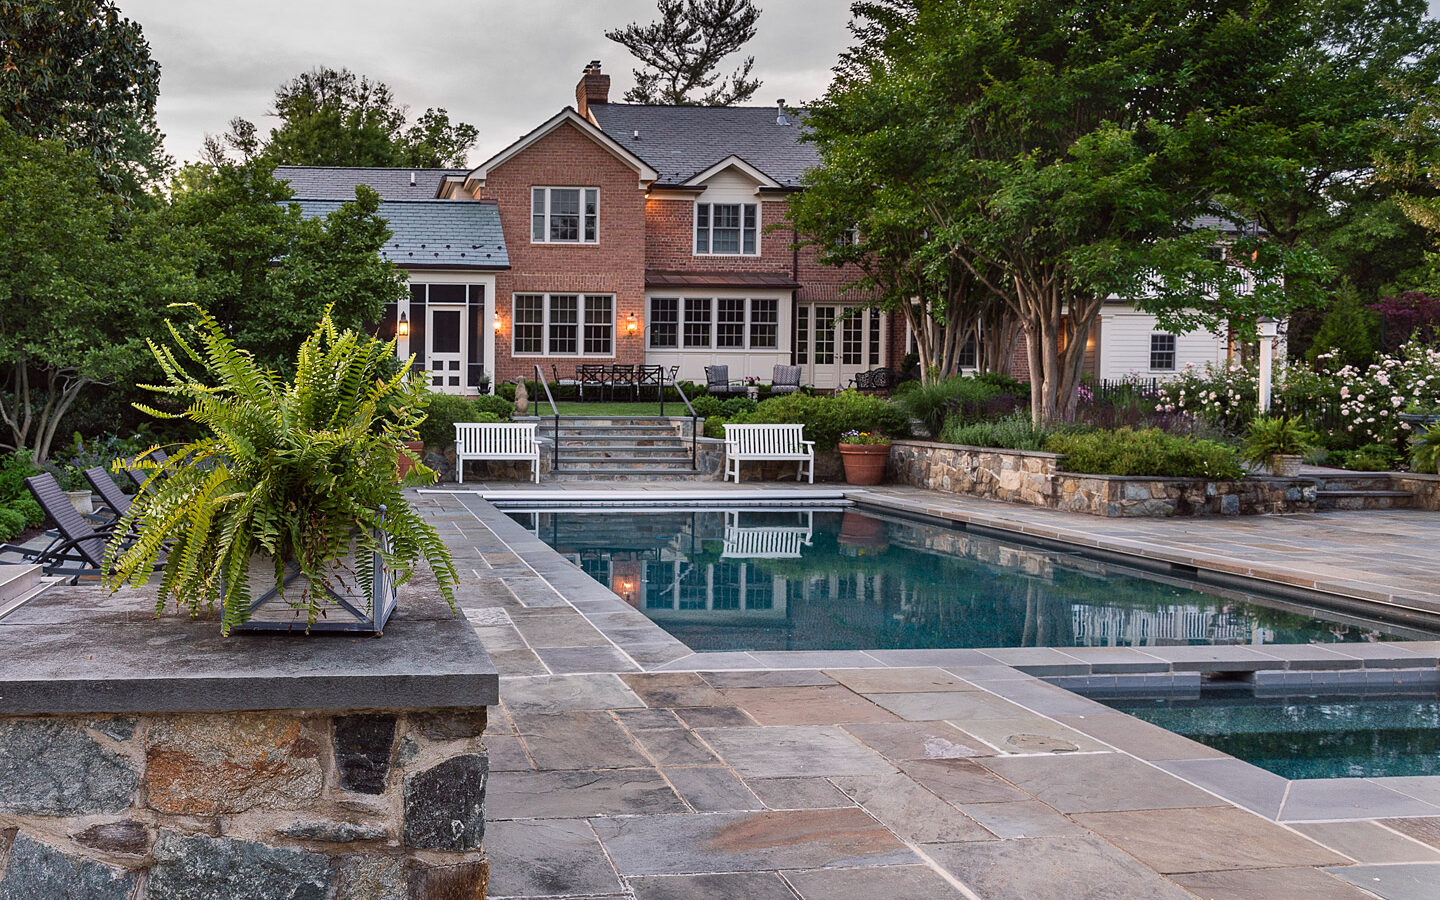 Patio, pool, steps and retaining walls